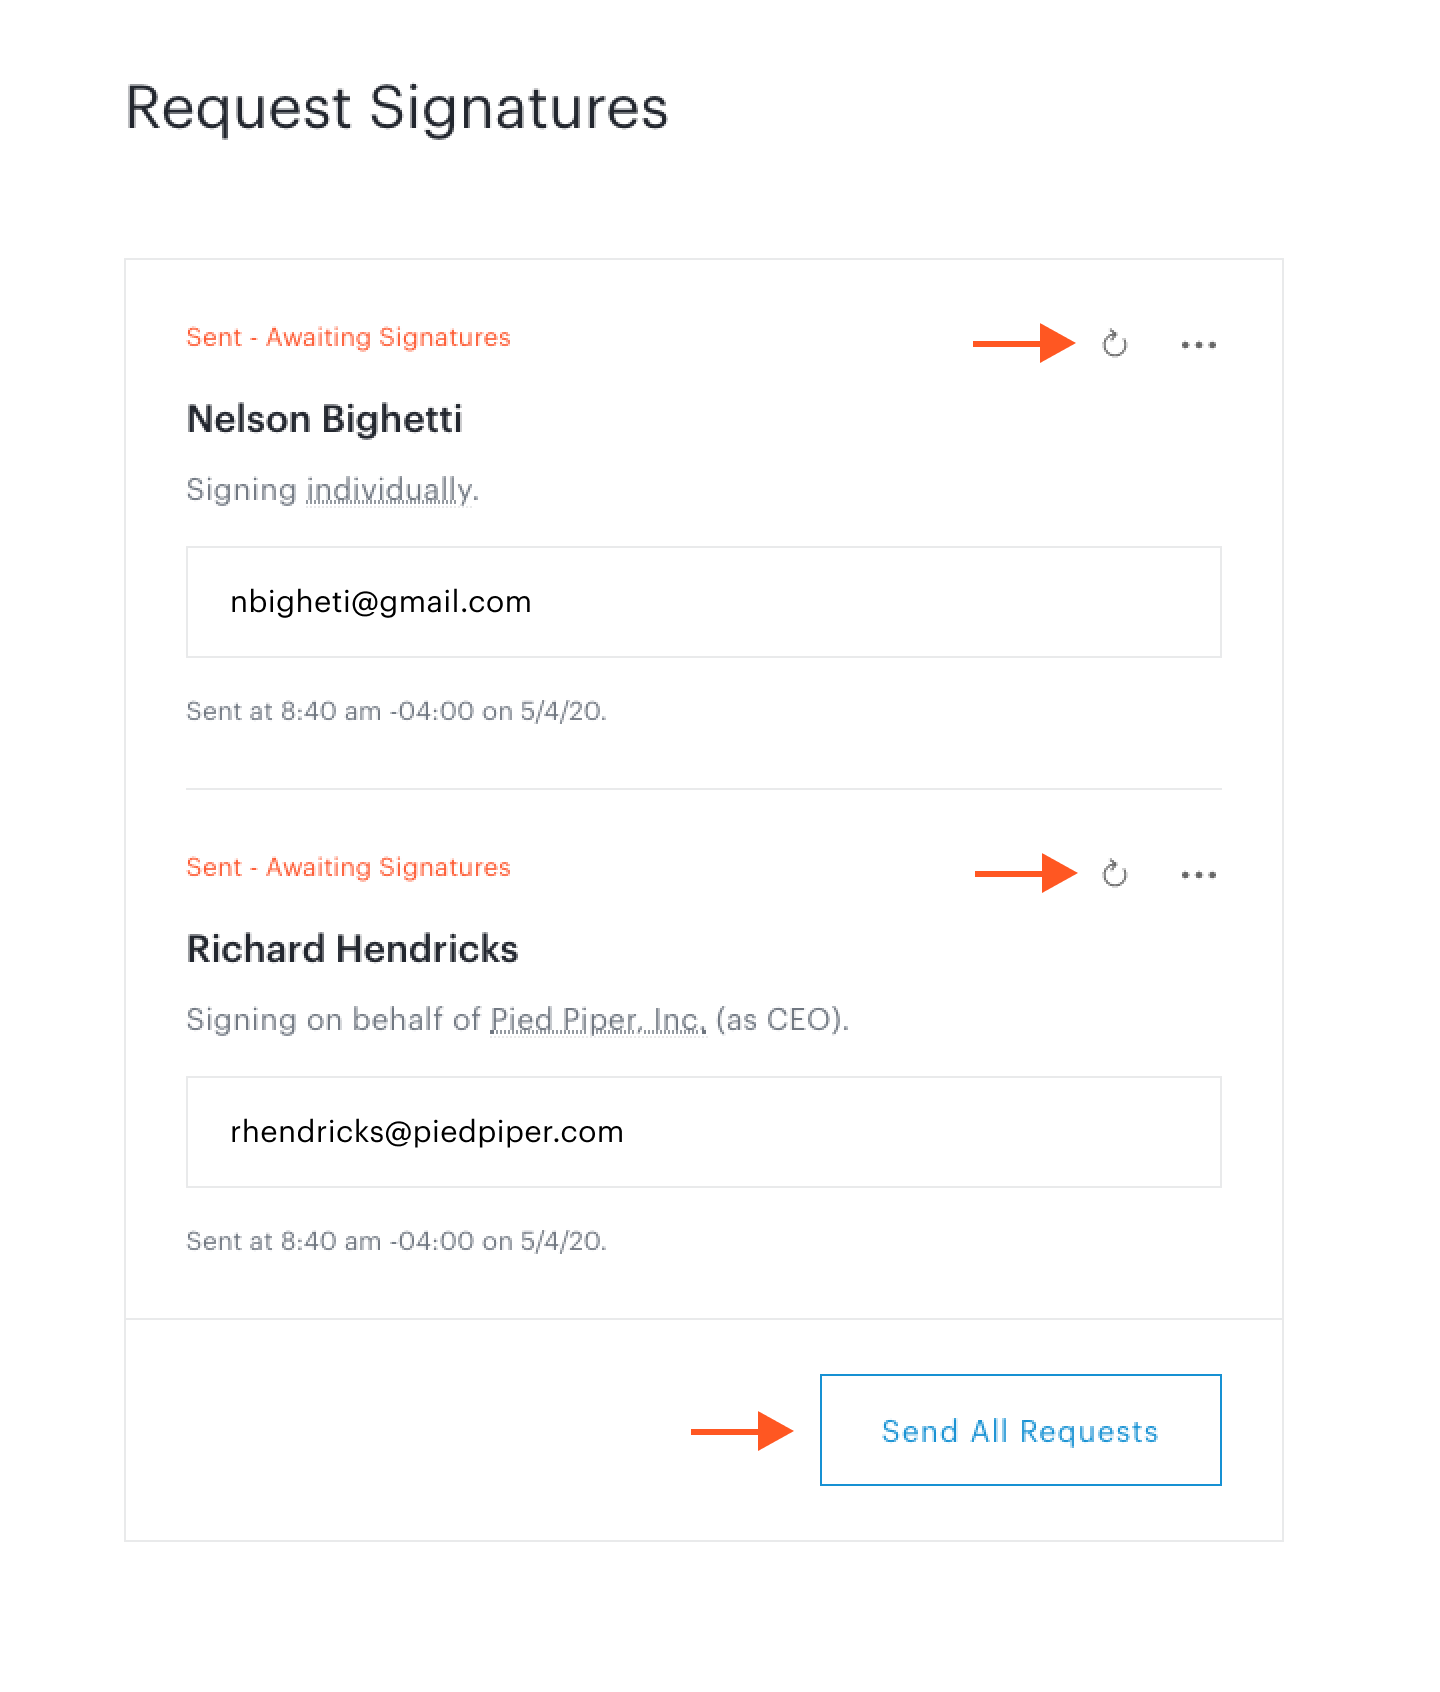 Resend icon and Send All Requests button in Request Signatures step in document set workflow